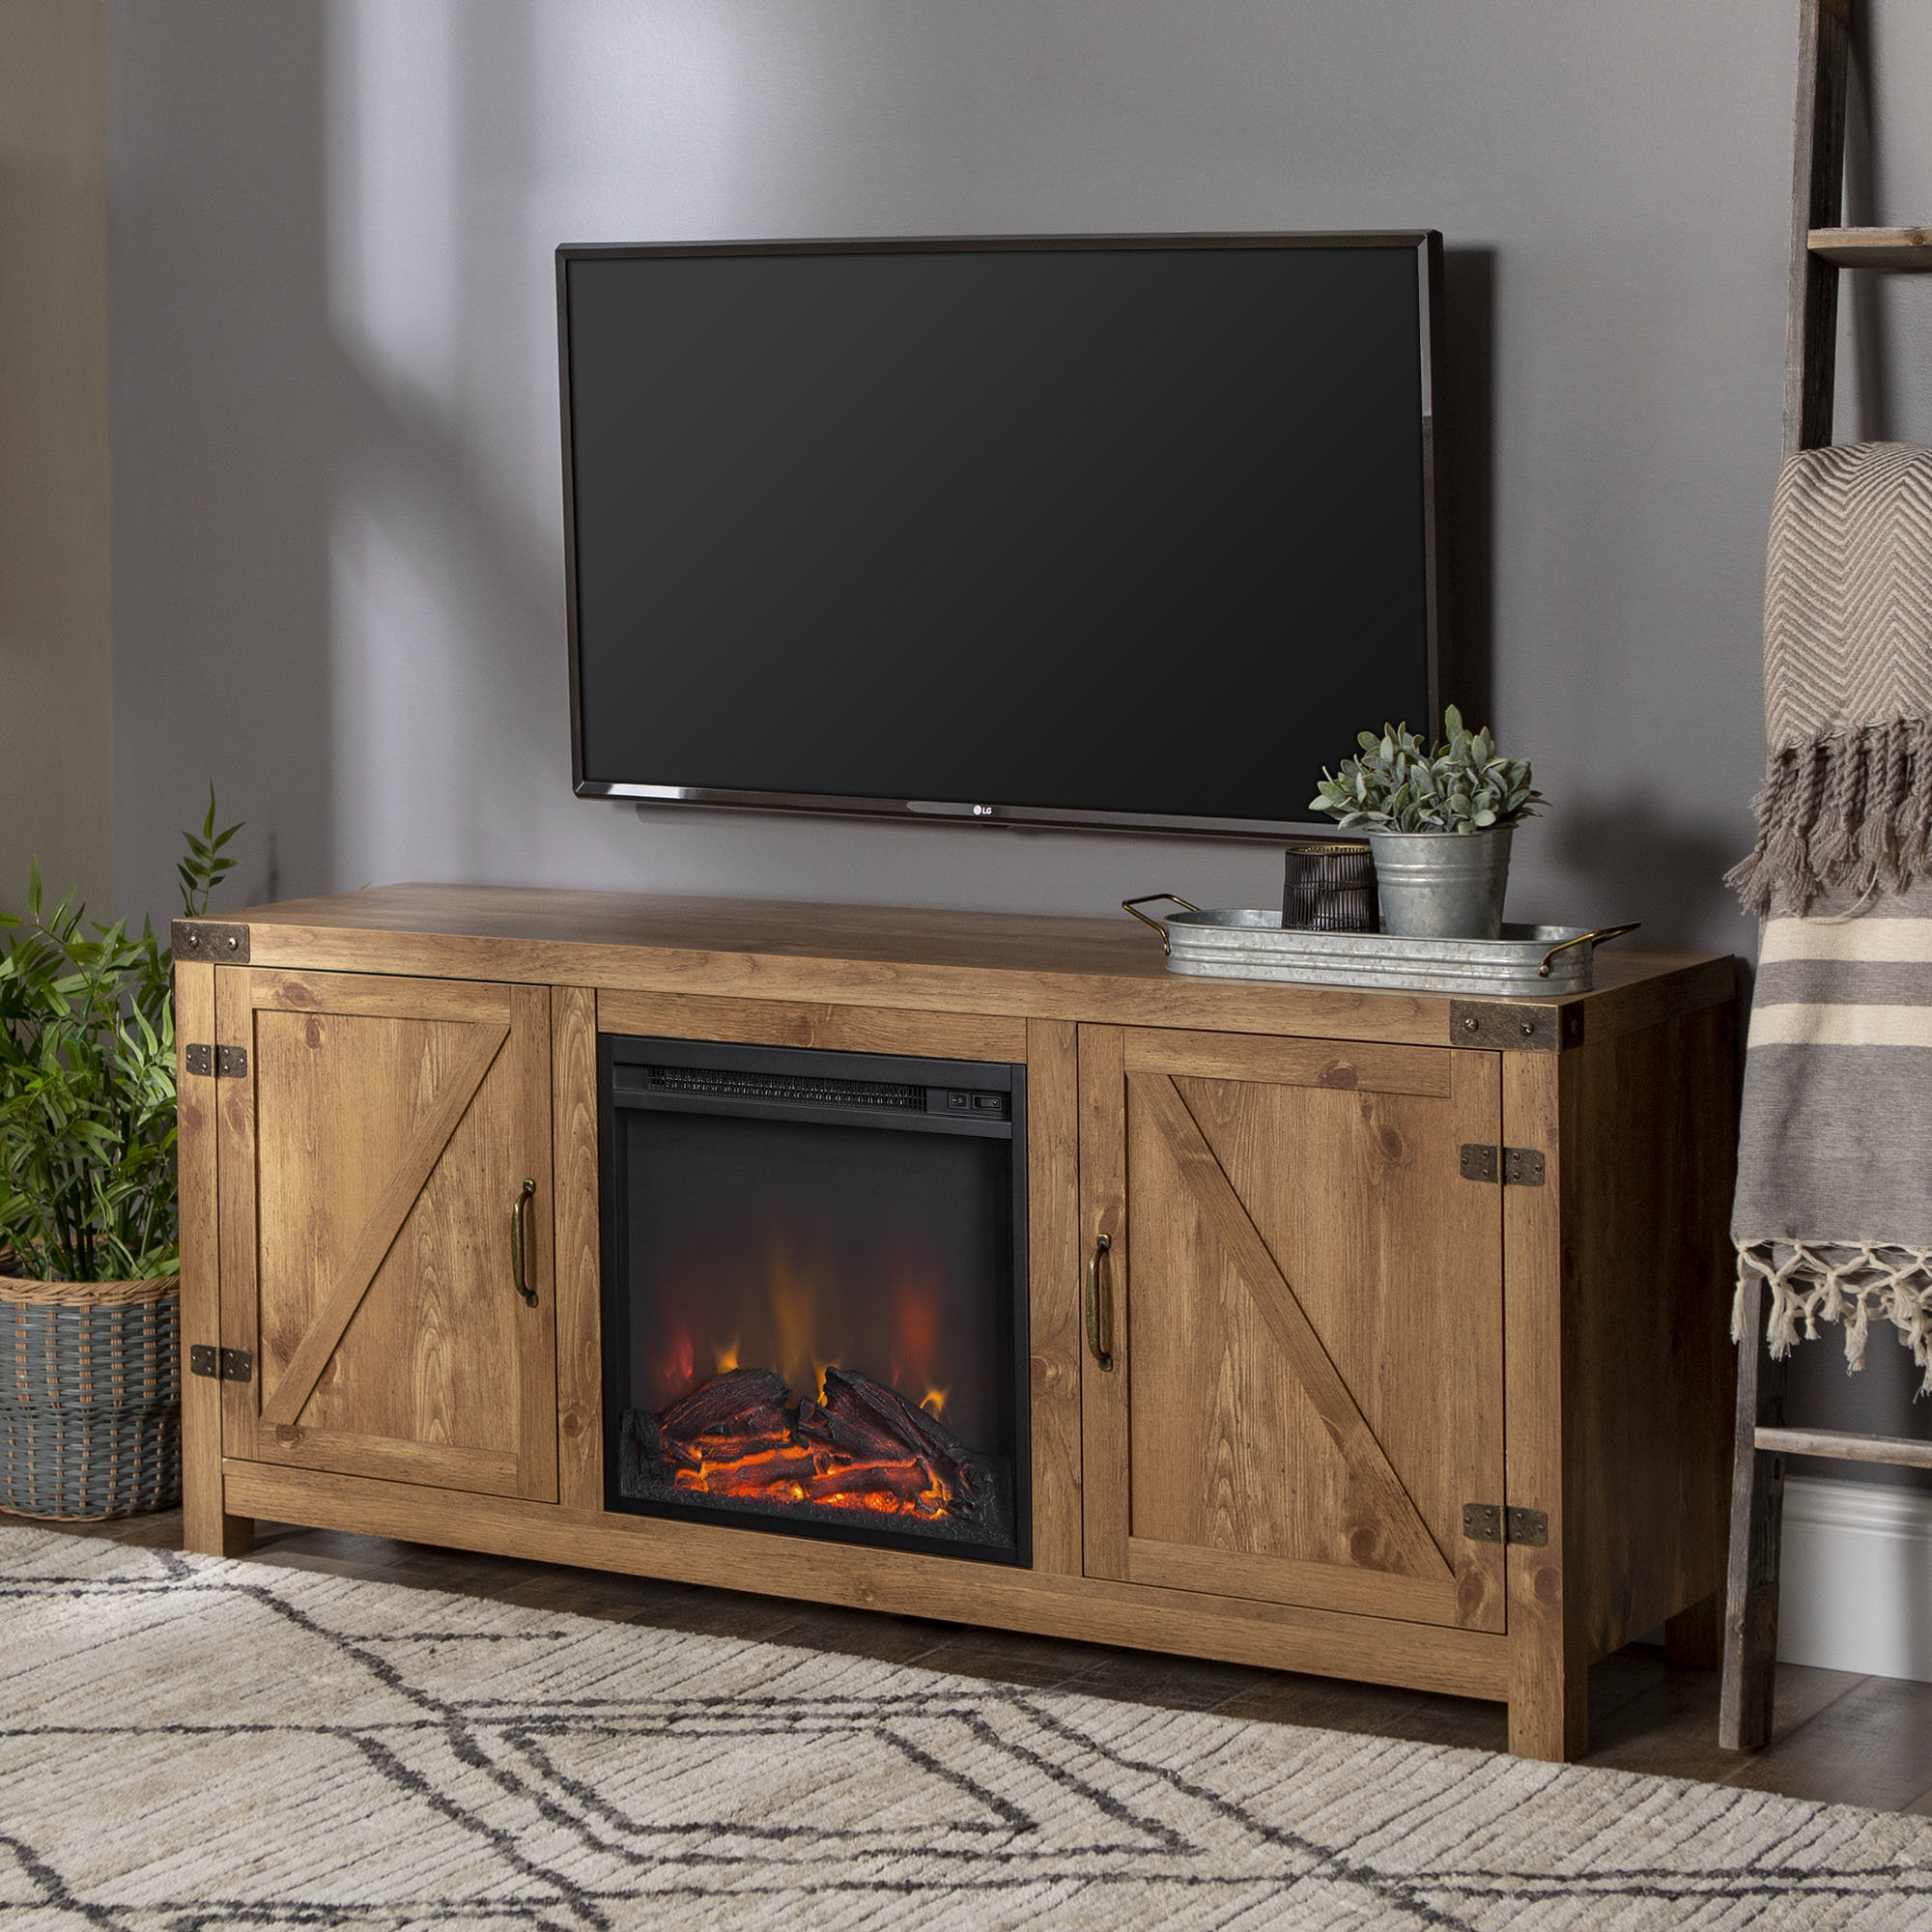 Fireplace Tv Stands & Entertainment Centers You'll Love | Wayfair (View 9 of 30)